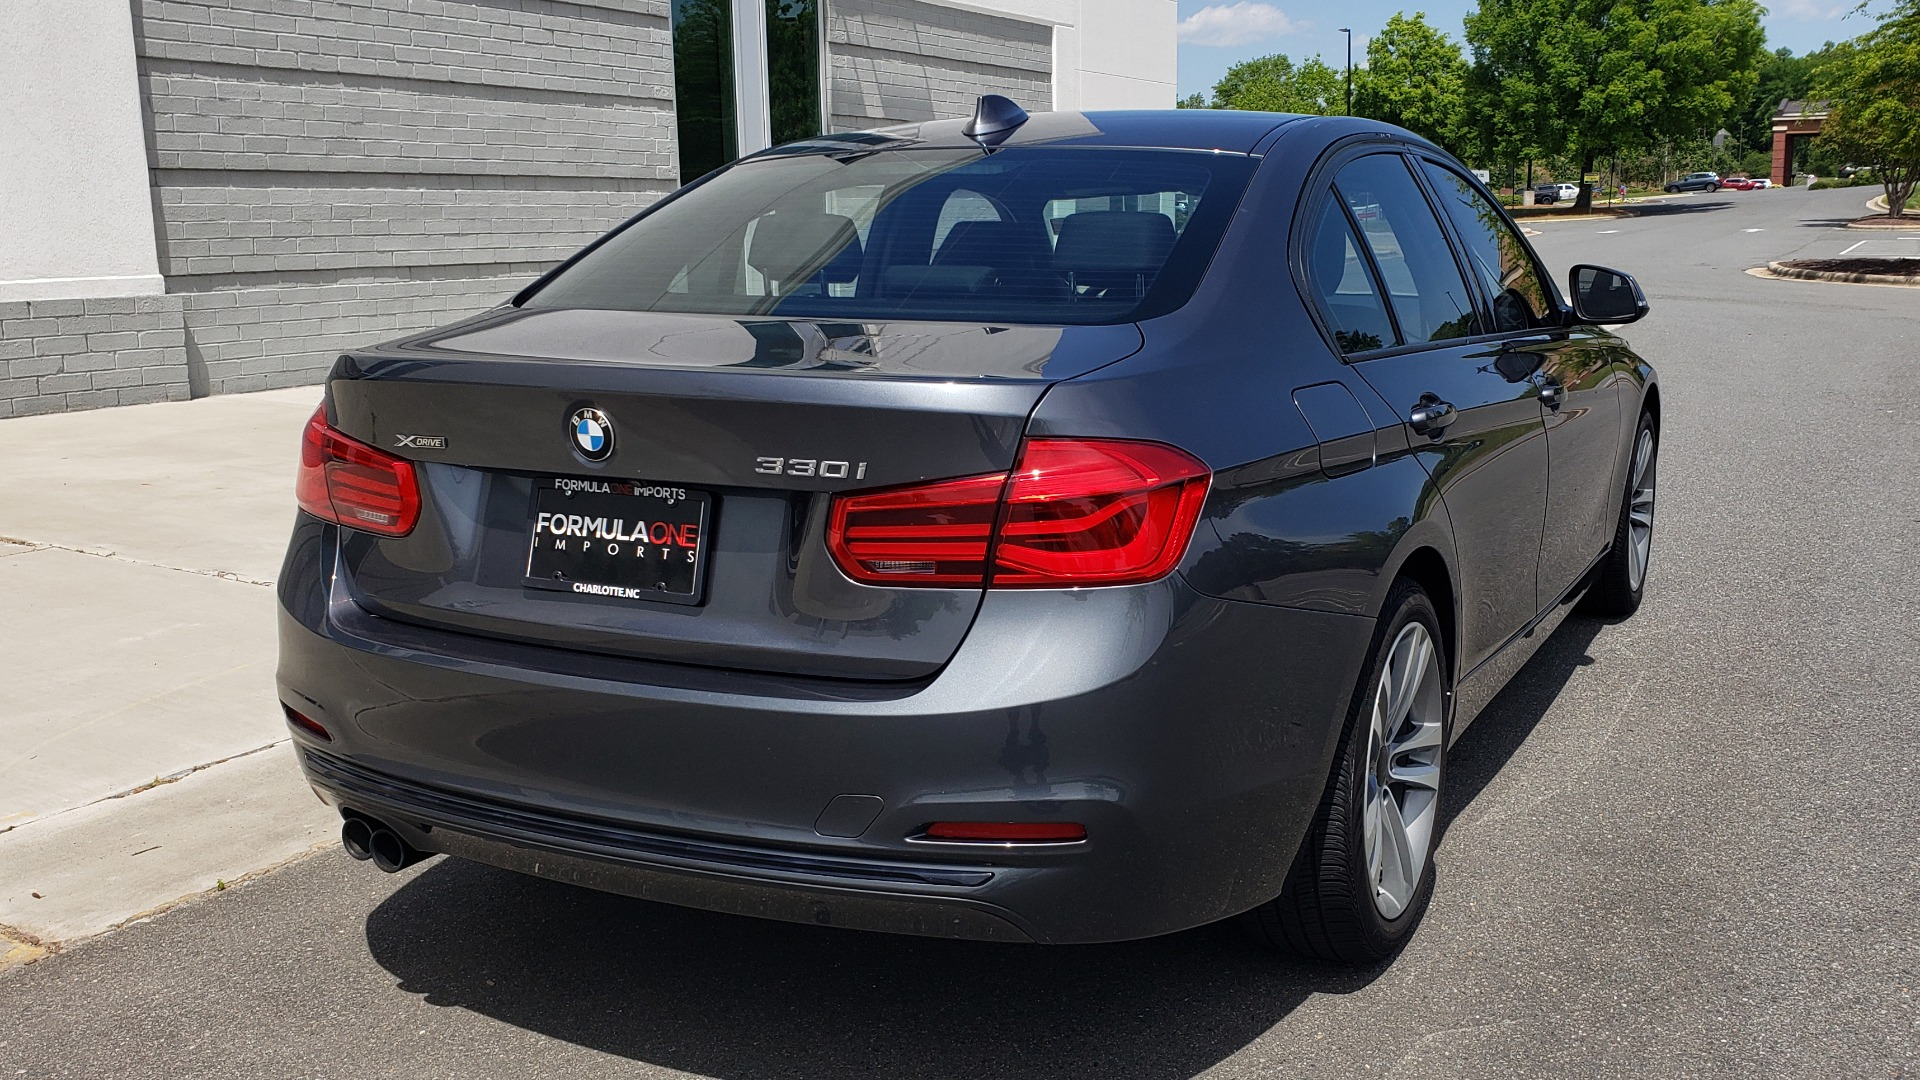 Used 2018 BMW 3 SERIES 330I XDRIVE / CONV PKG / SUNROOF / SPORT STS / HTD STS / REARVIEW for sale $28,495 at Formula Imports in Charlotte NC 28227 8